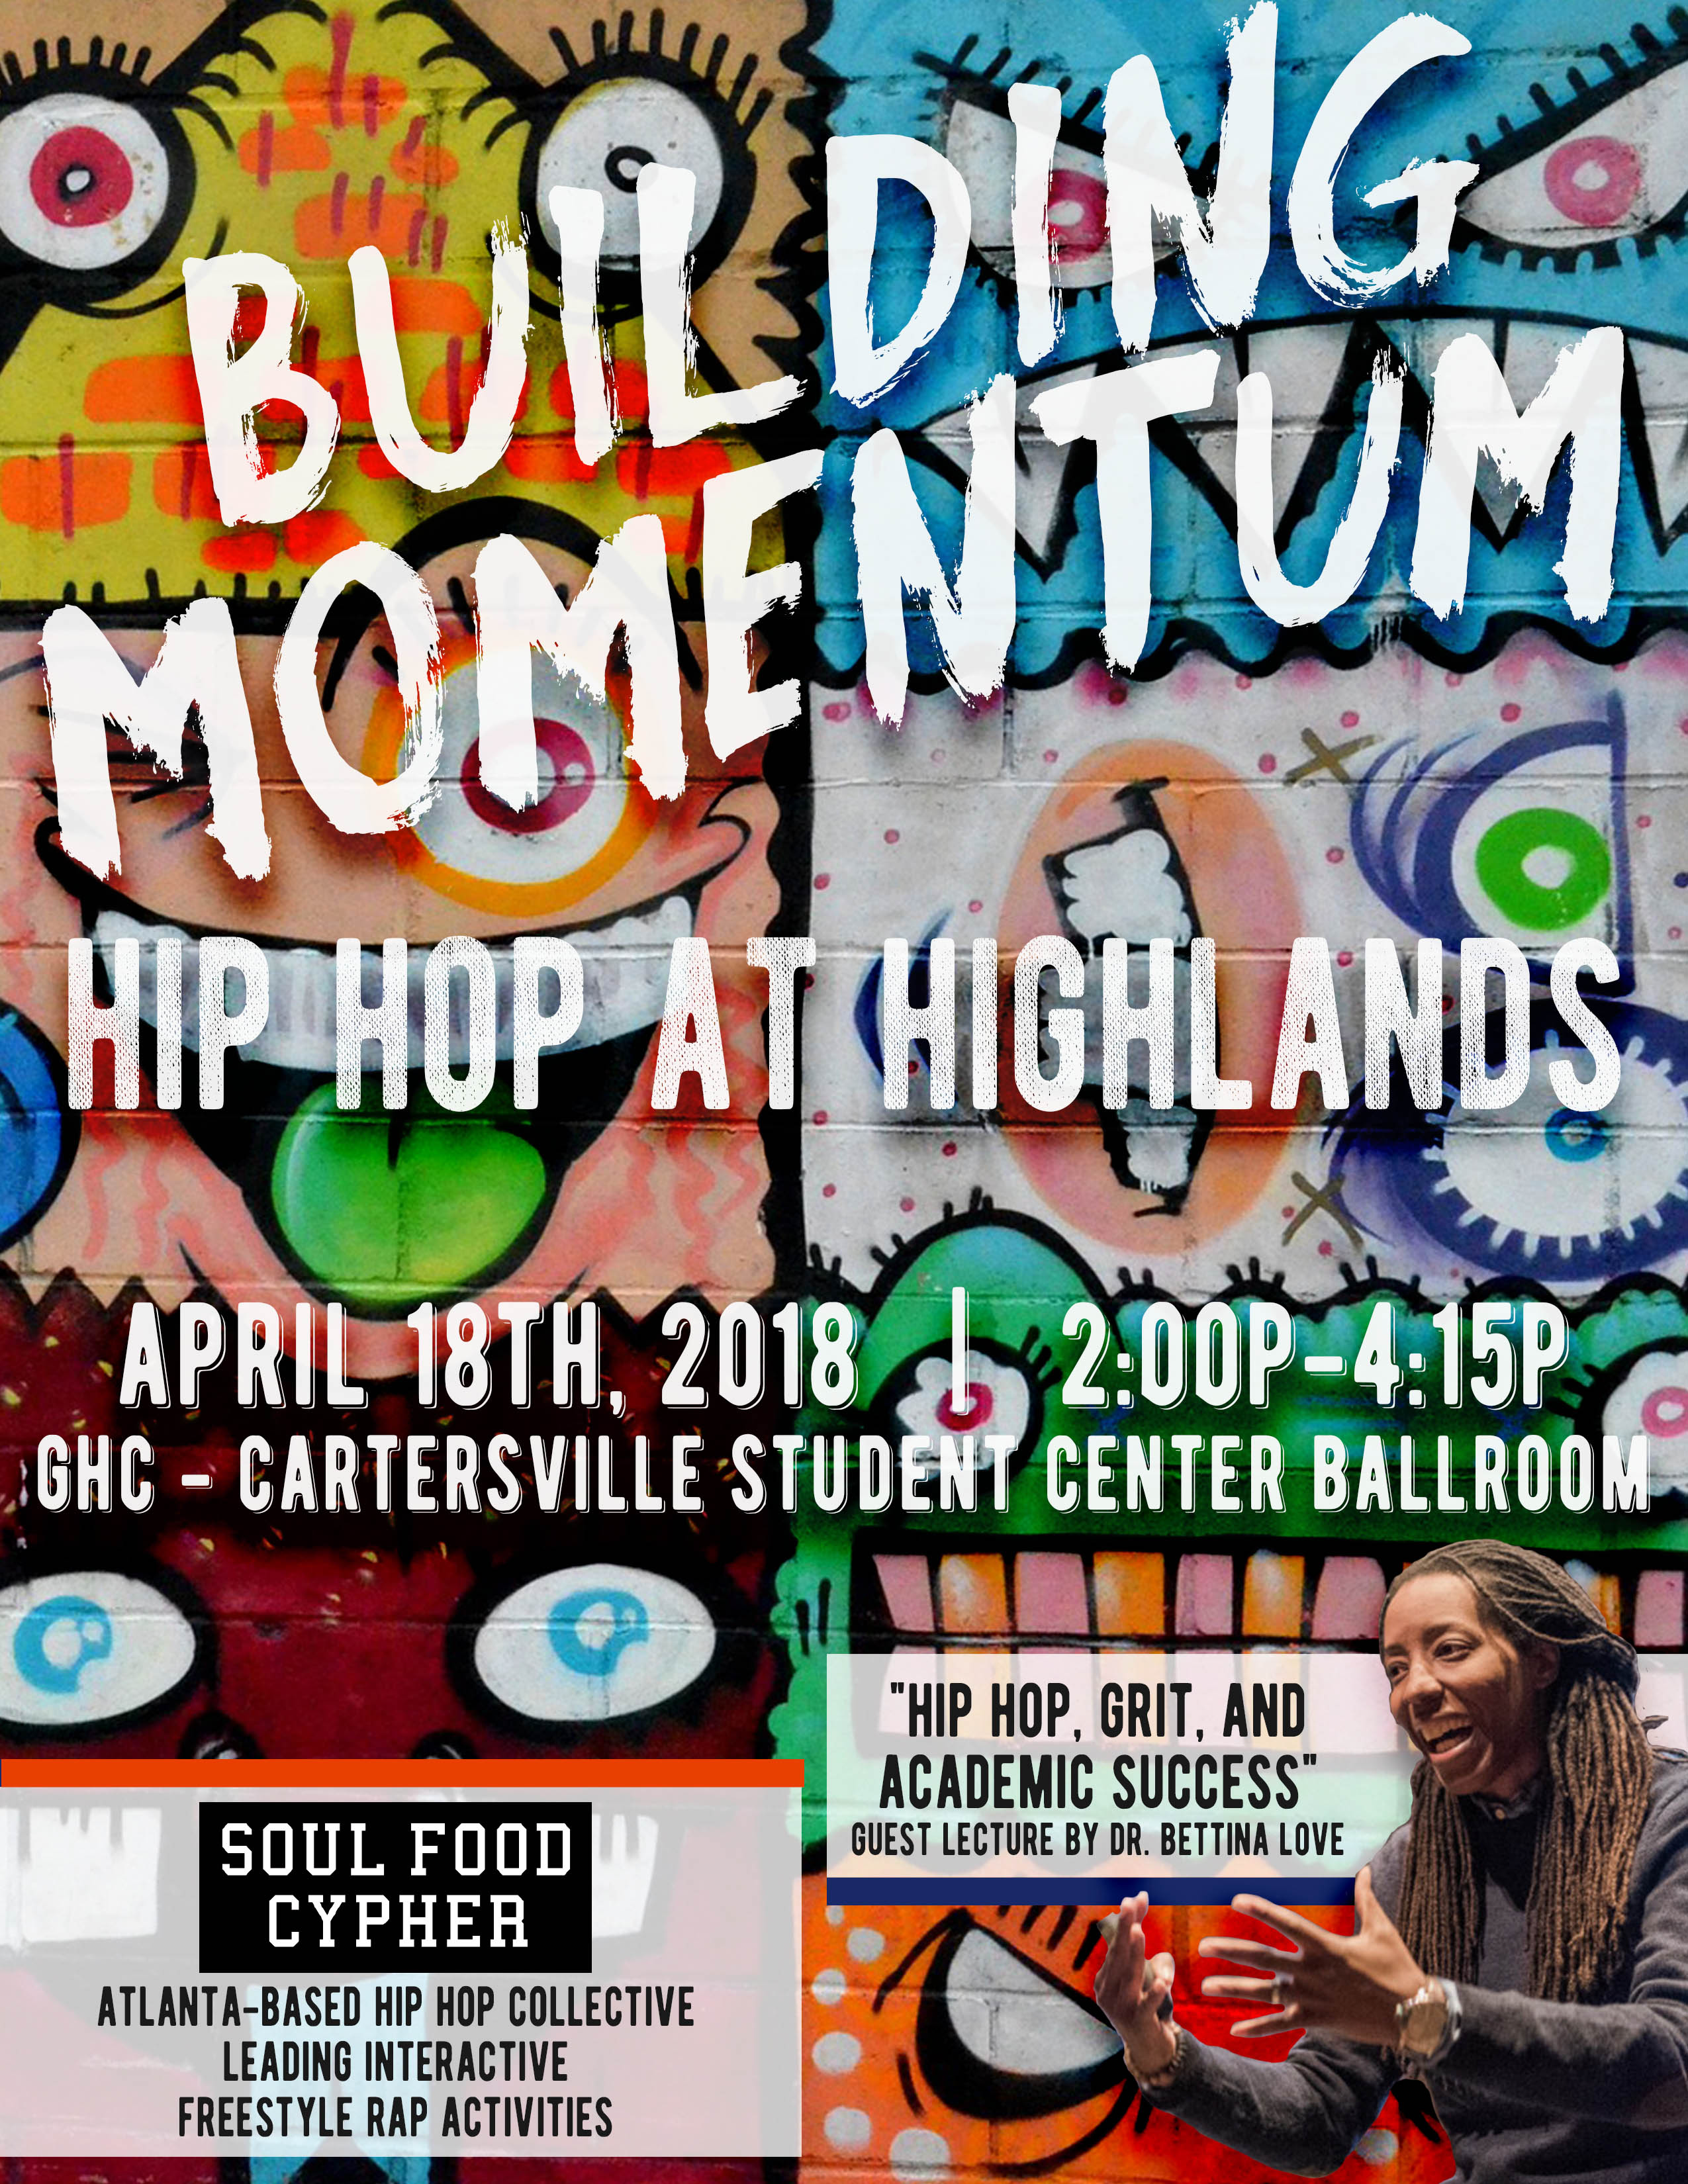 poster for hip-hop event